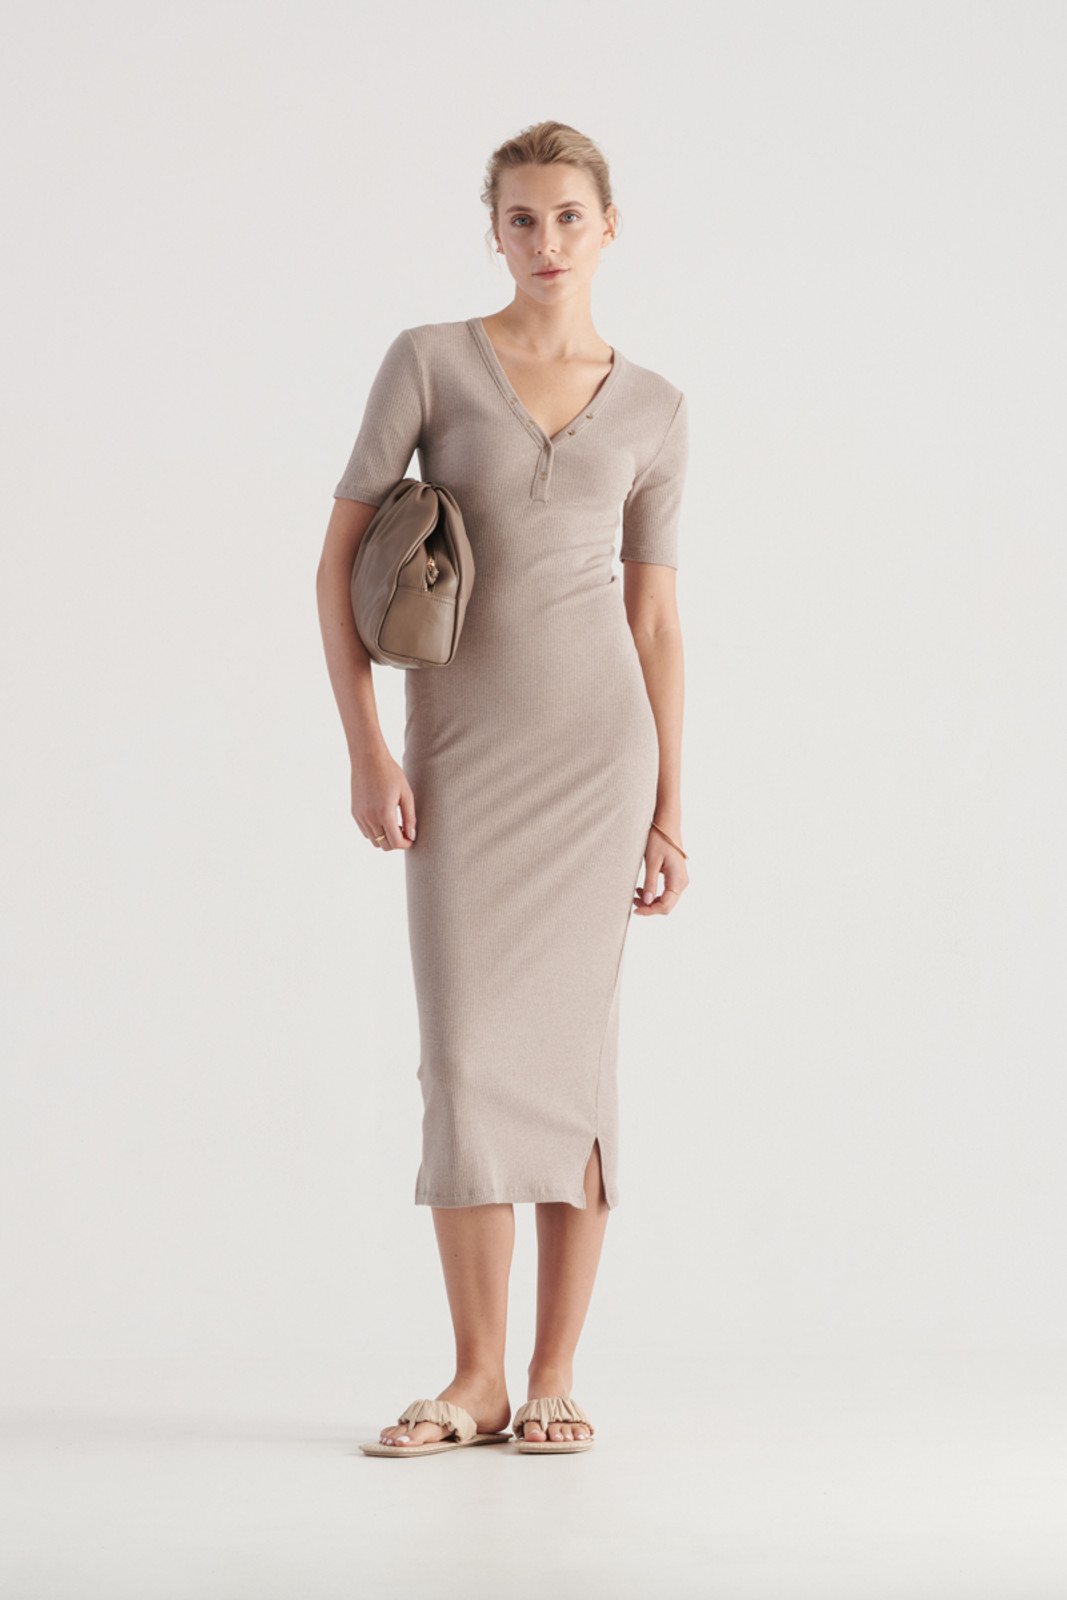 Elka Collective WomensHadley Dress Taupe Marle  6